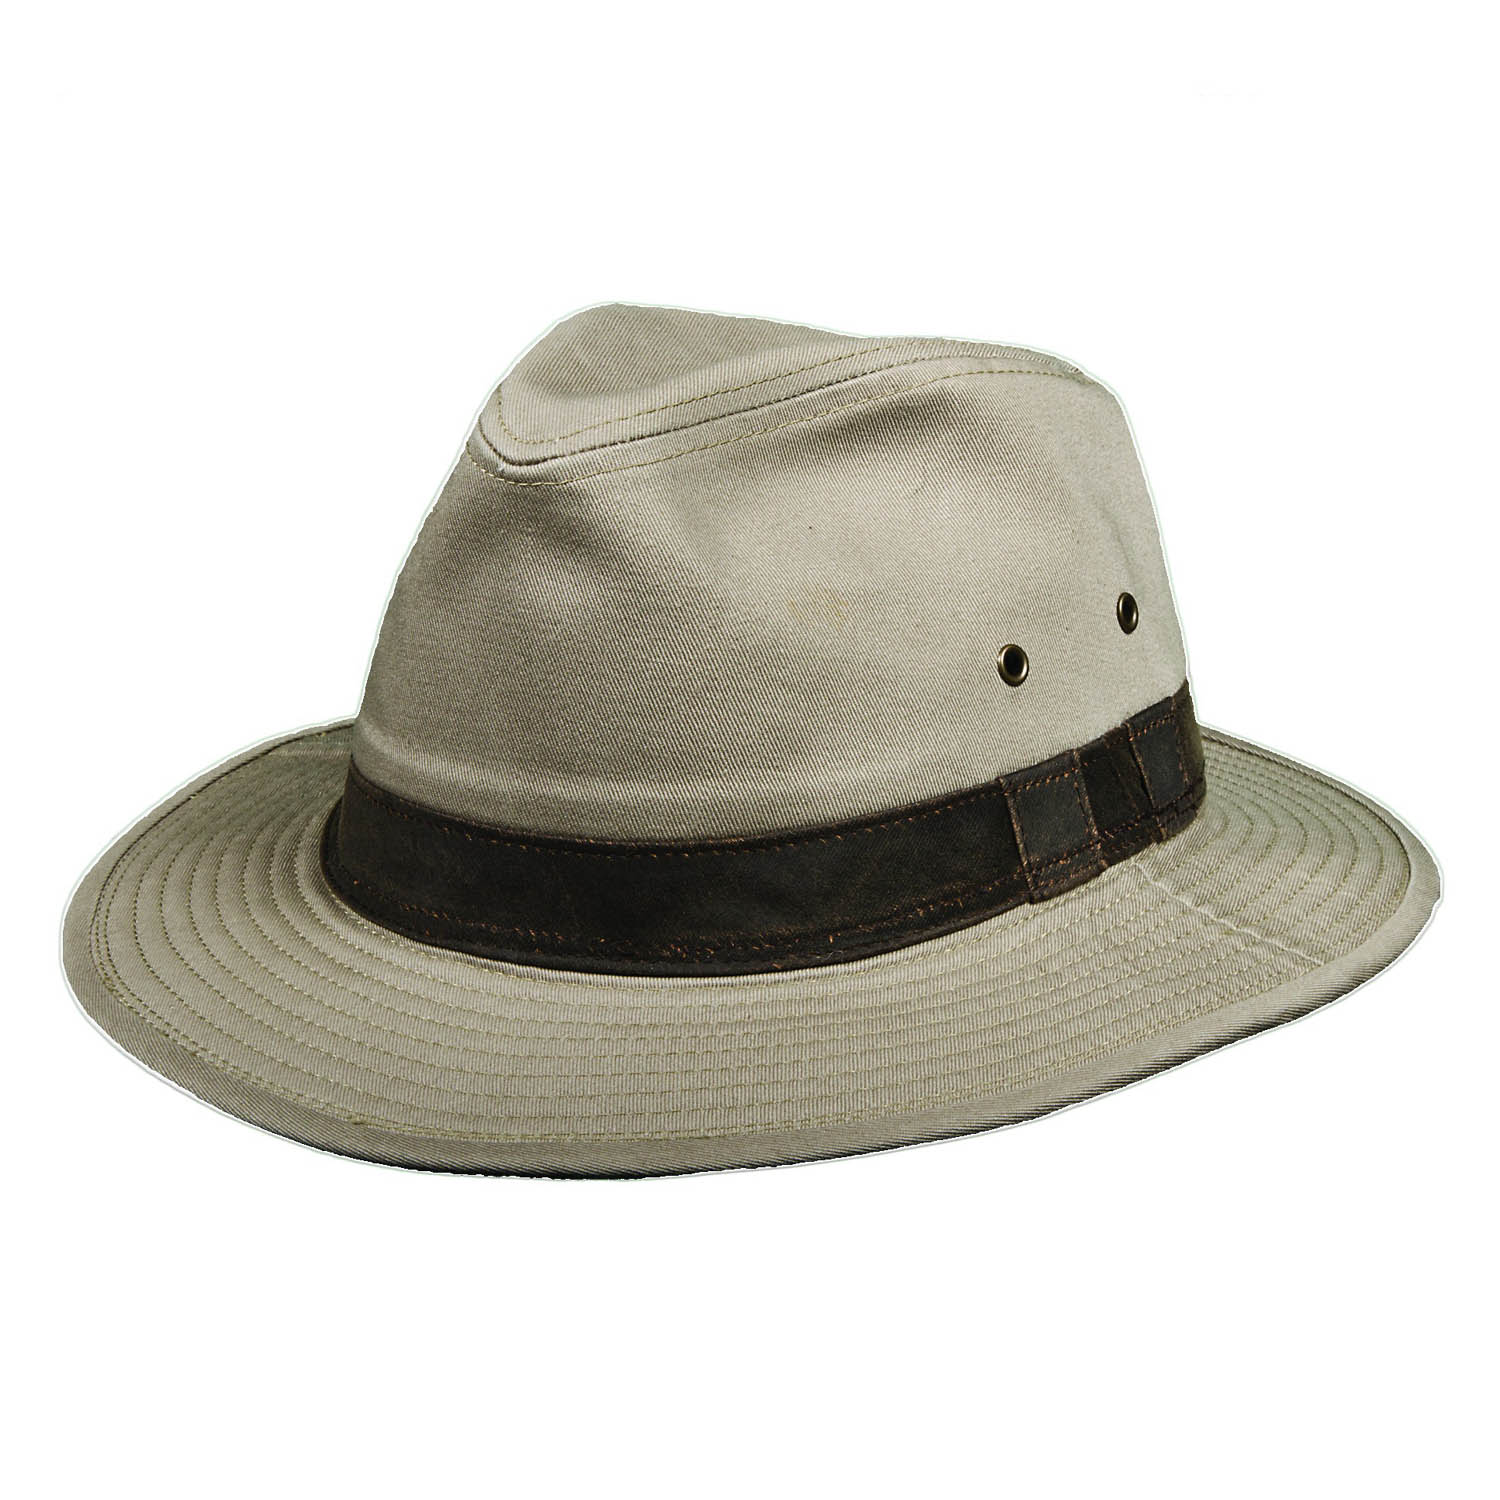 Garment Washed Twill Khaki Safari Hat